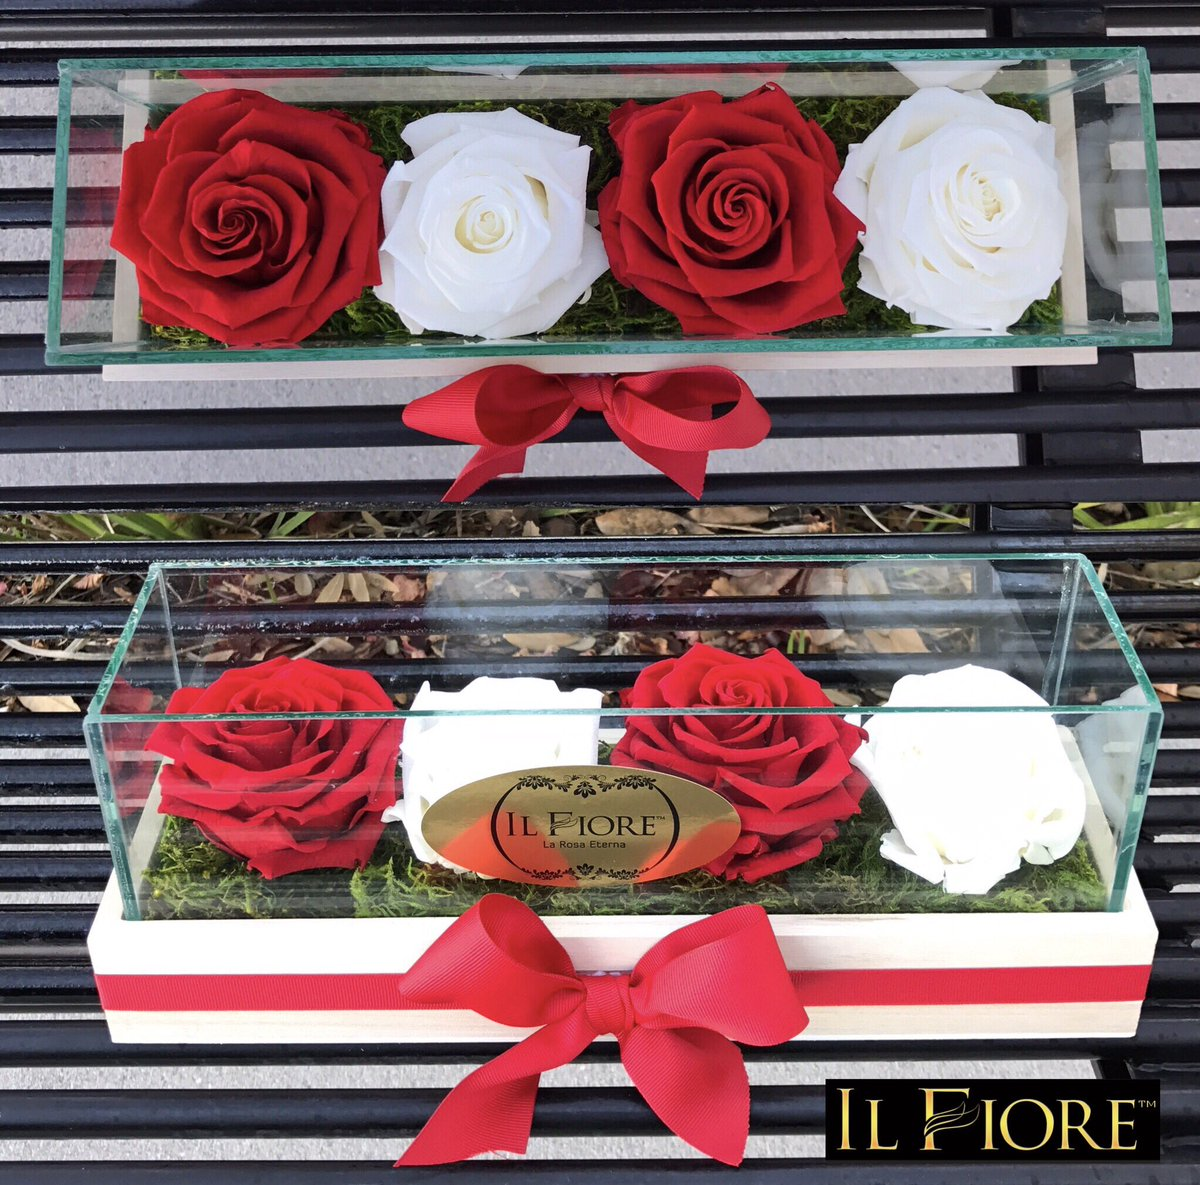 Il Fiore Bartolone On Twitter Roses That Last One Year Call Now To Order Your Eternal For Valentine S Day Valentinesday Flowers Love Winterpark